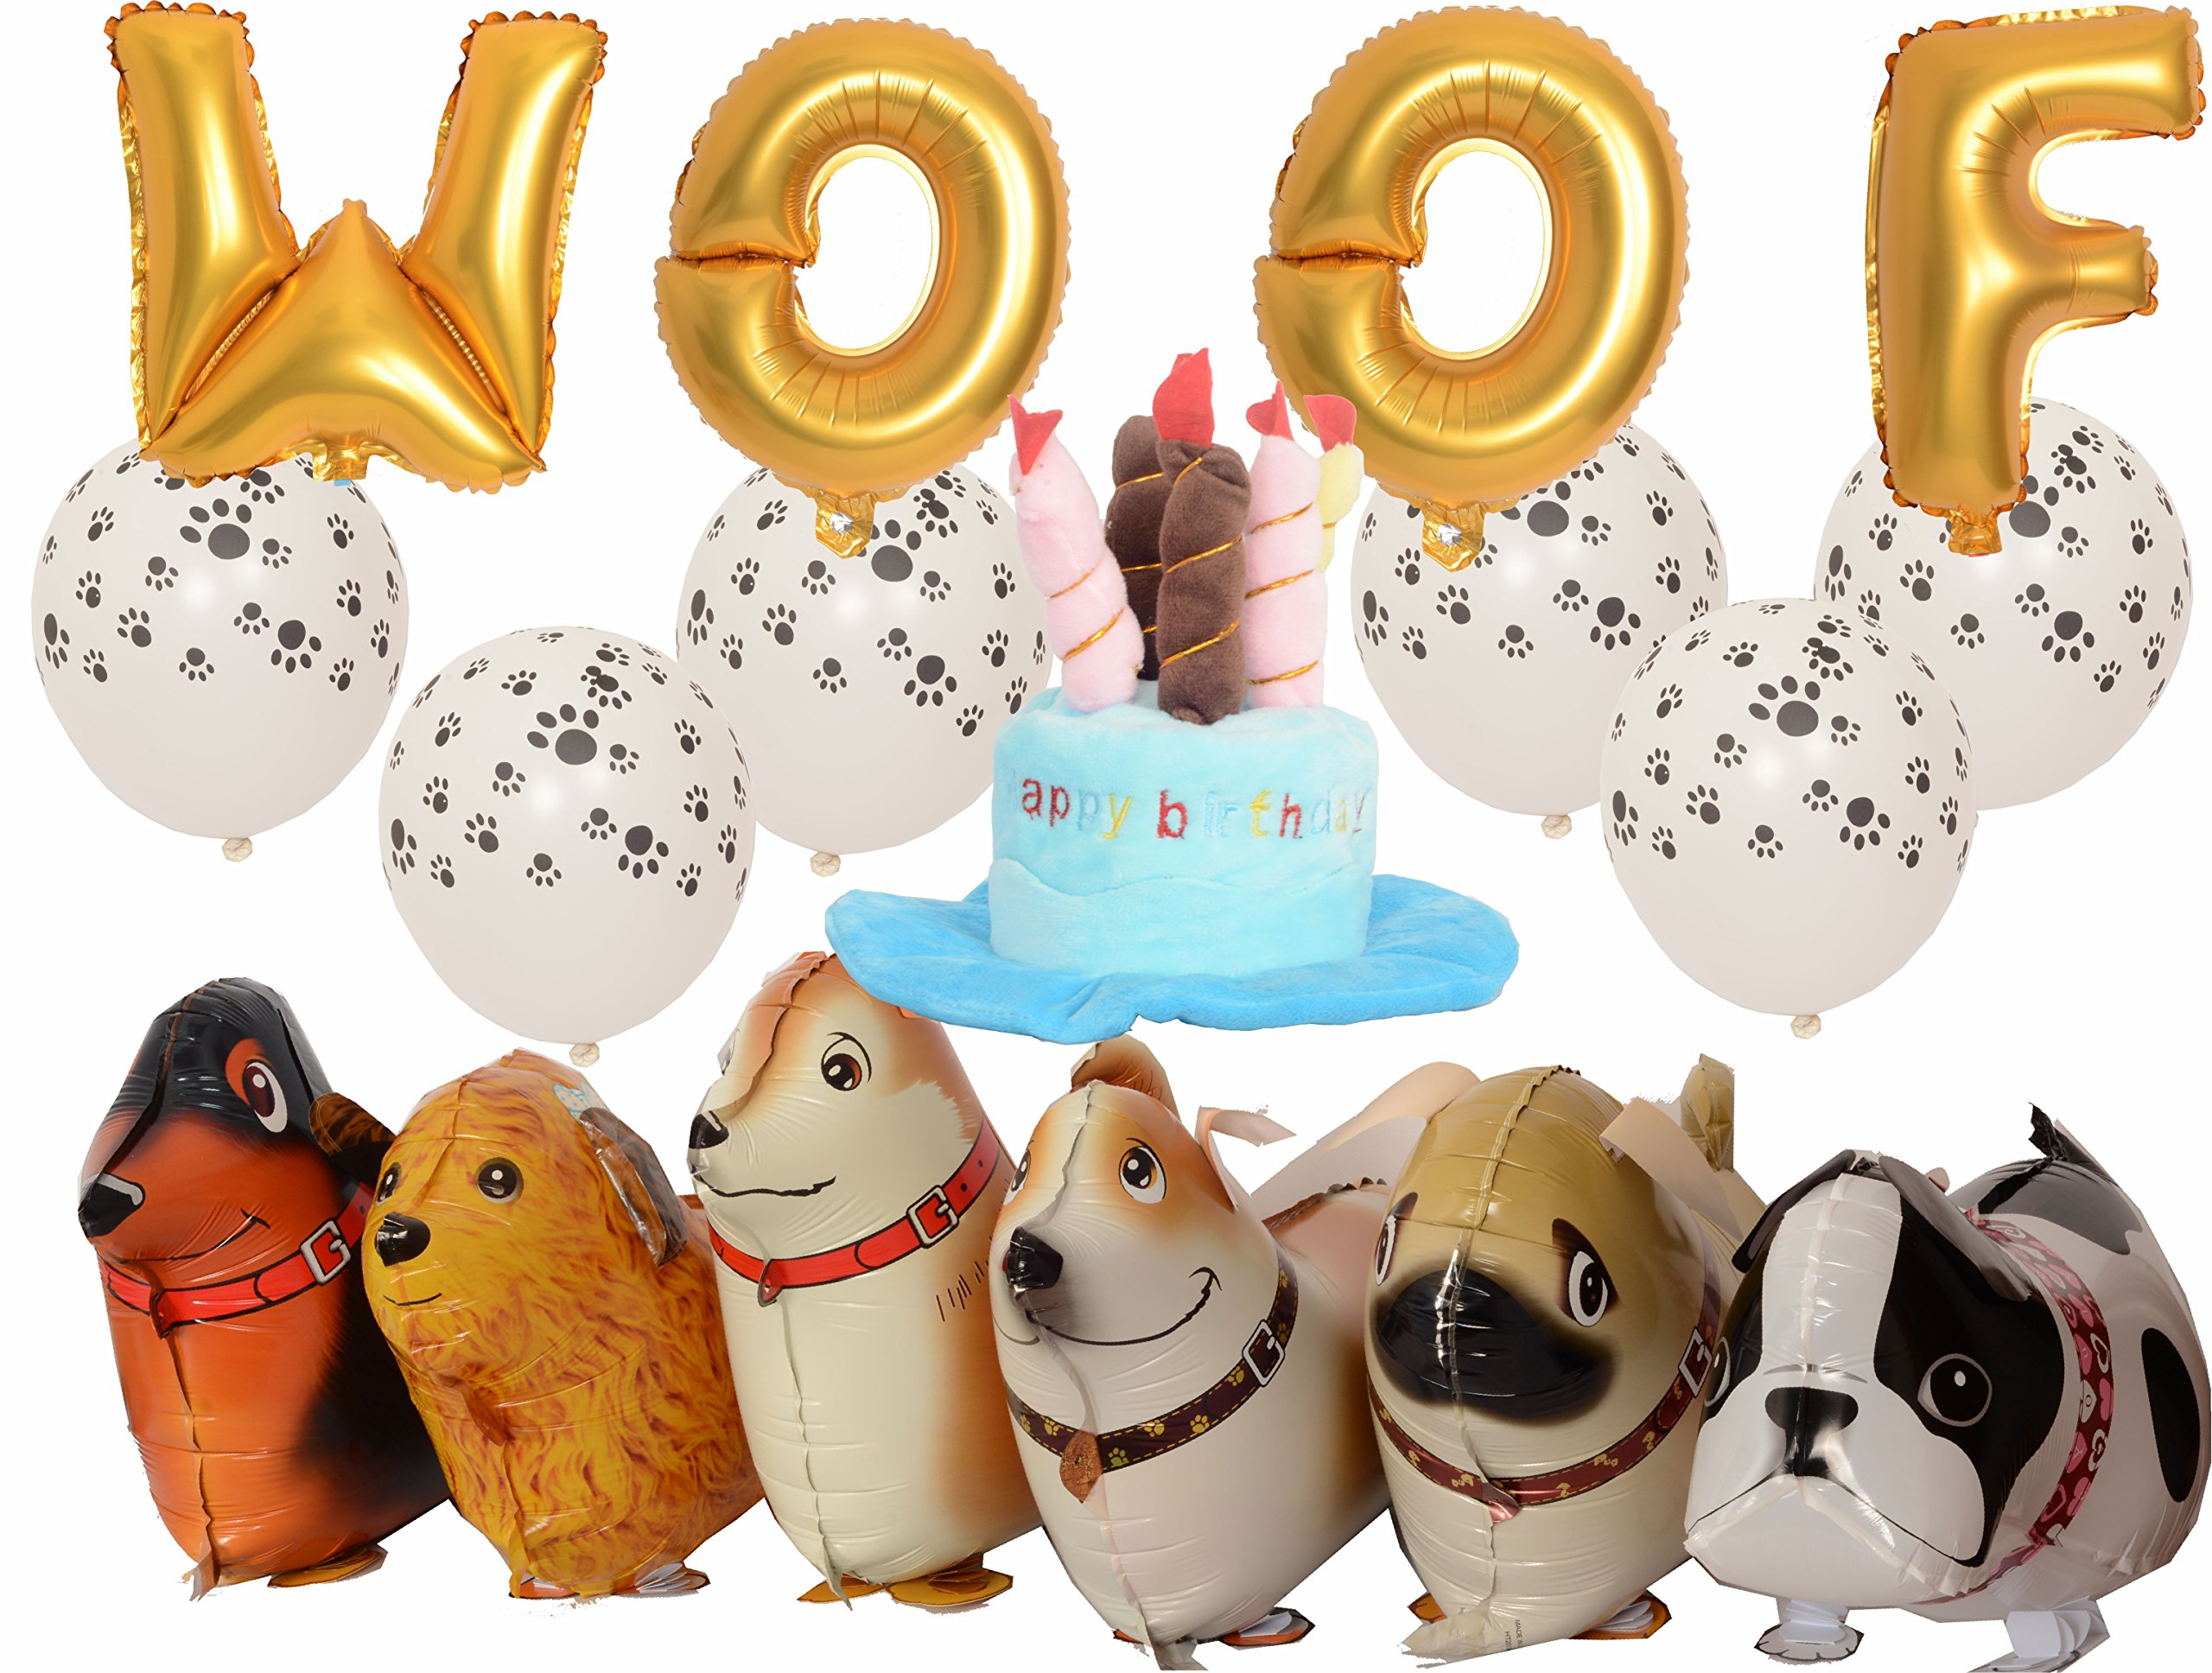 Meant2ToBe Dog Birthday Decorations Kit, 12 Inch WOOF Letter Ballons - 6Pc Walking Animal Pet Dog balloons - Paw Prints Round Biodegradable Latex Balloons - Blue Dog Birthday Hat